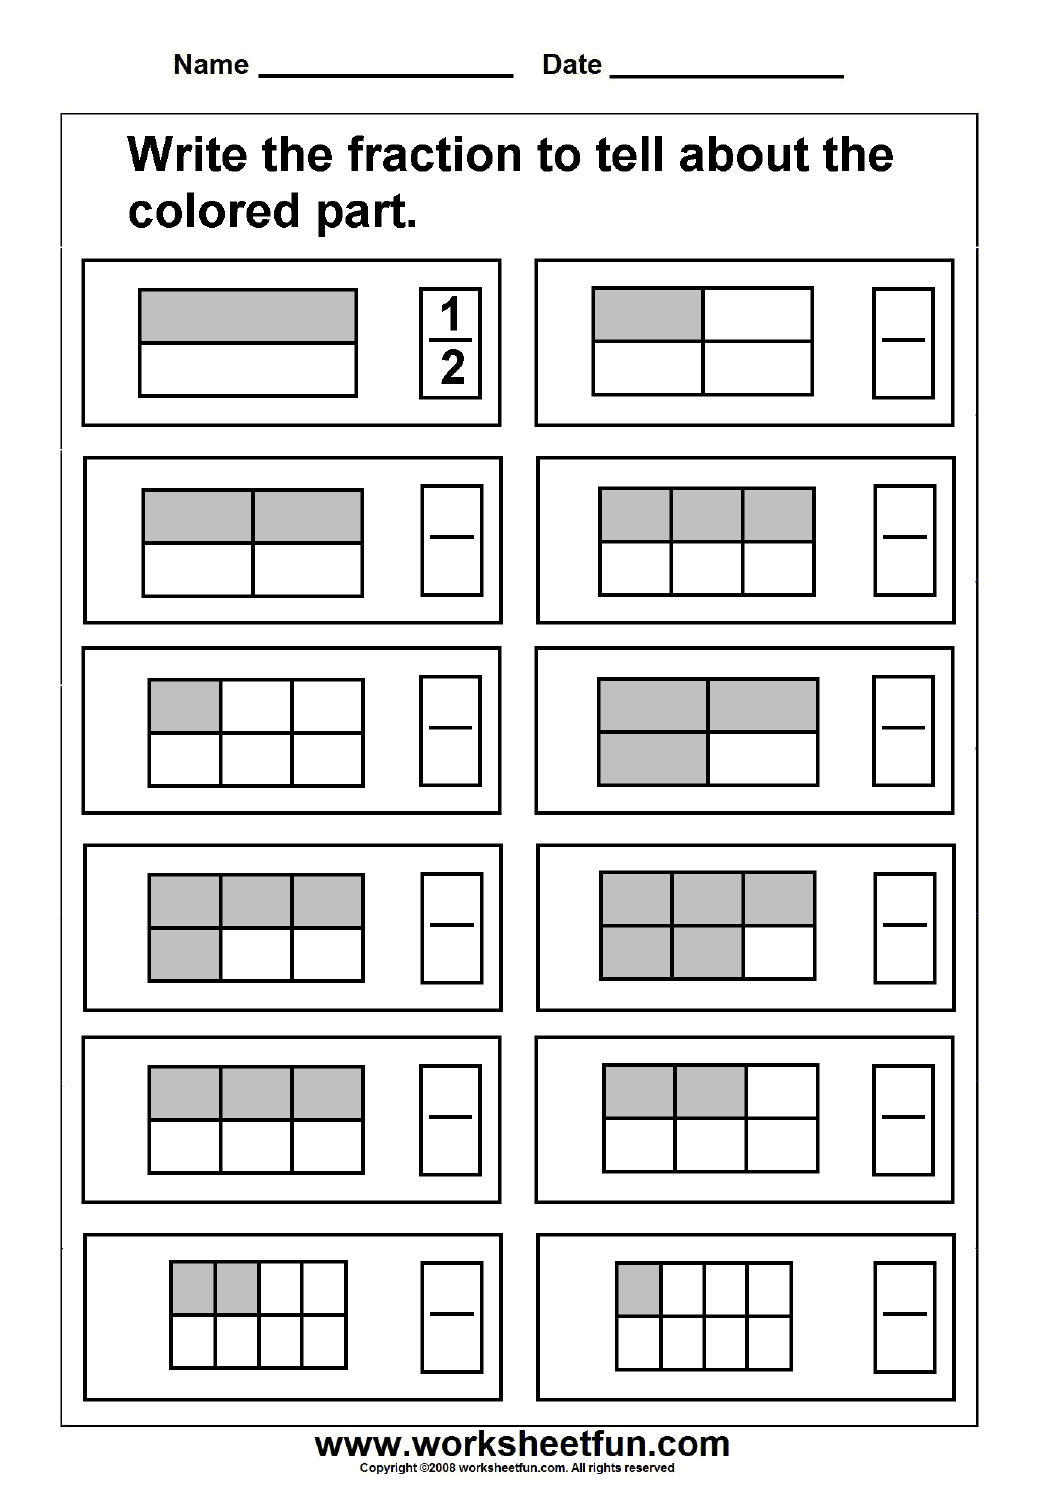 Fraction Model FREE Printable Worksheets Worksheetfun – Coloring Fractions Worksheets Free